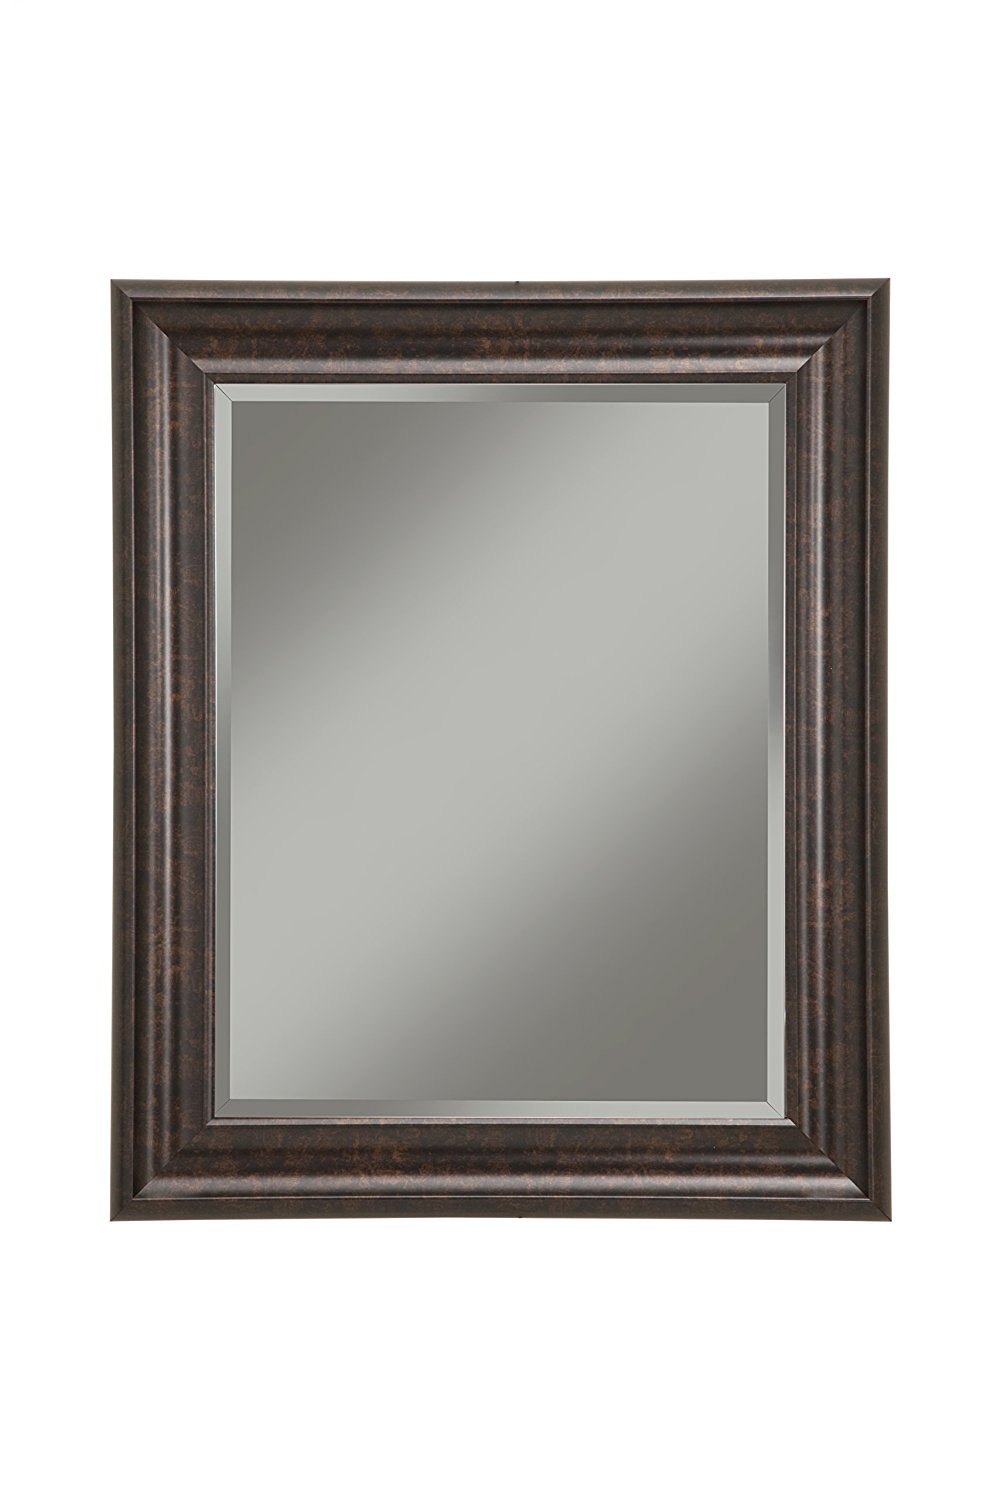 Sandberg Furniture 14217 Oil Rubbed Bronze Wall Mirror Oil Rubbed Bronze,36 X 30""